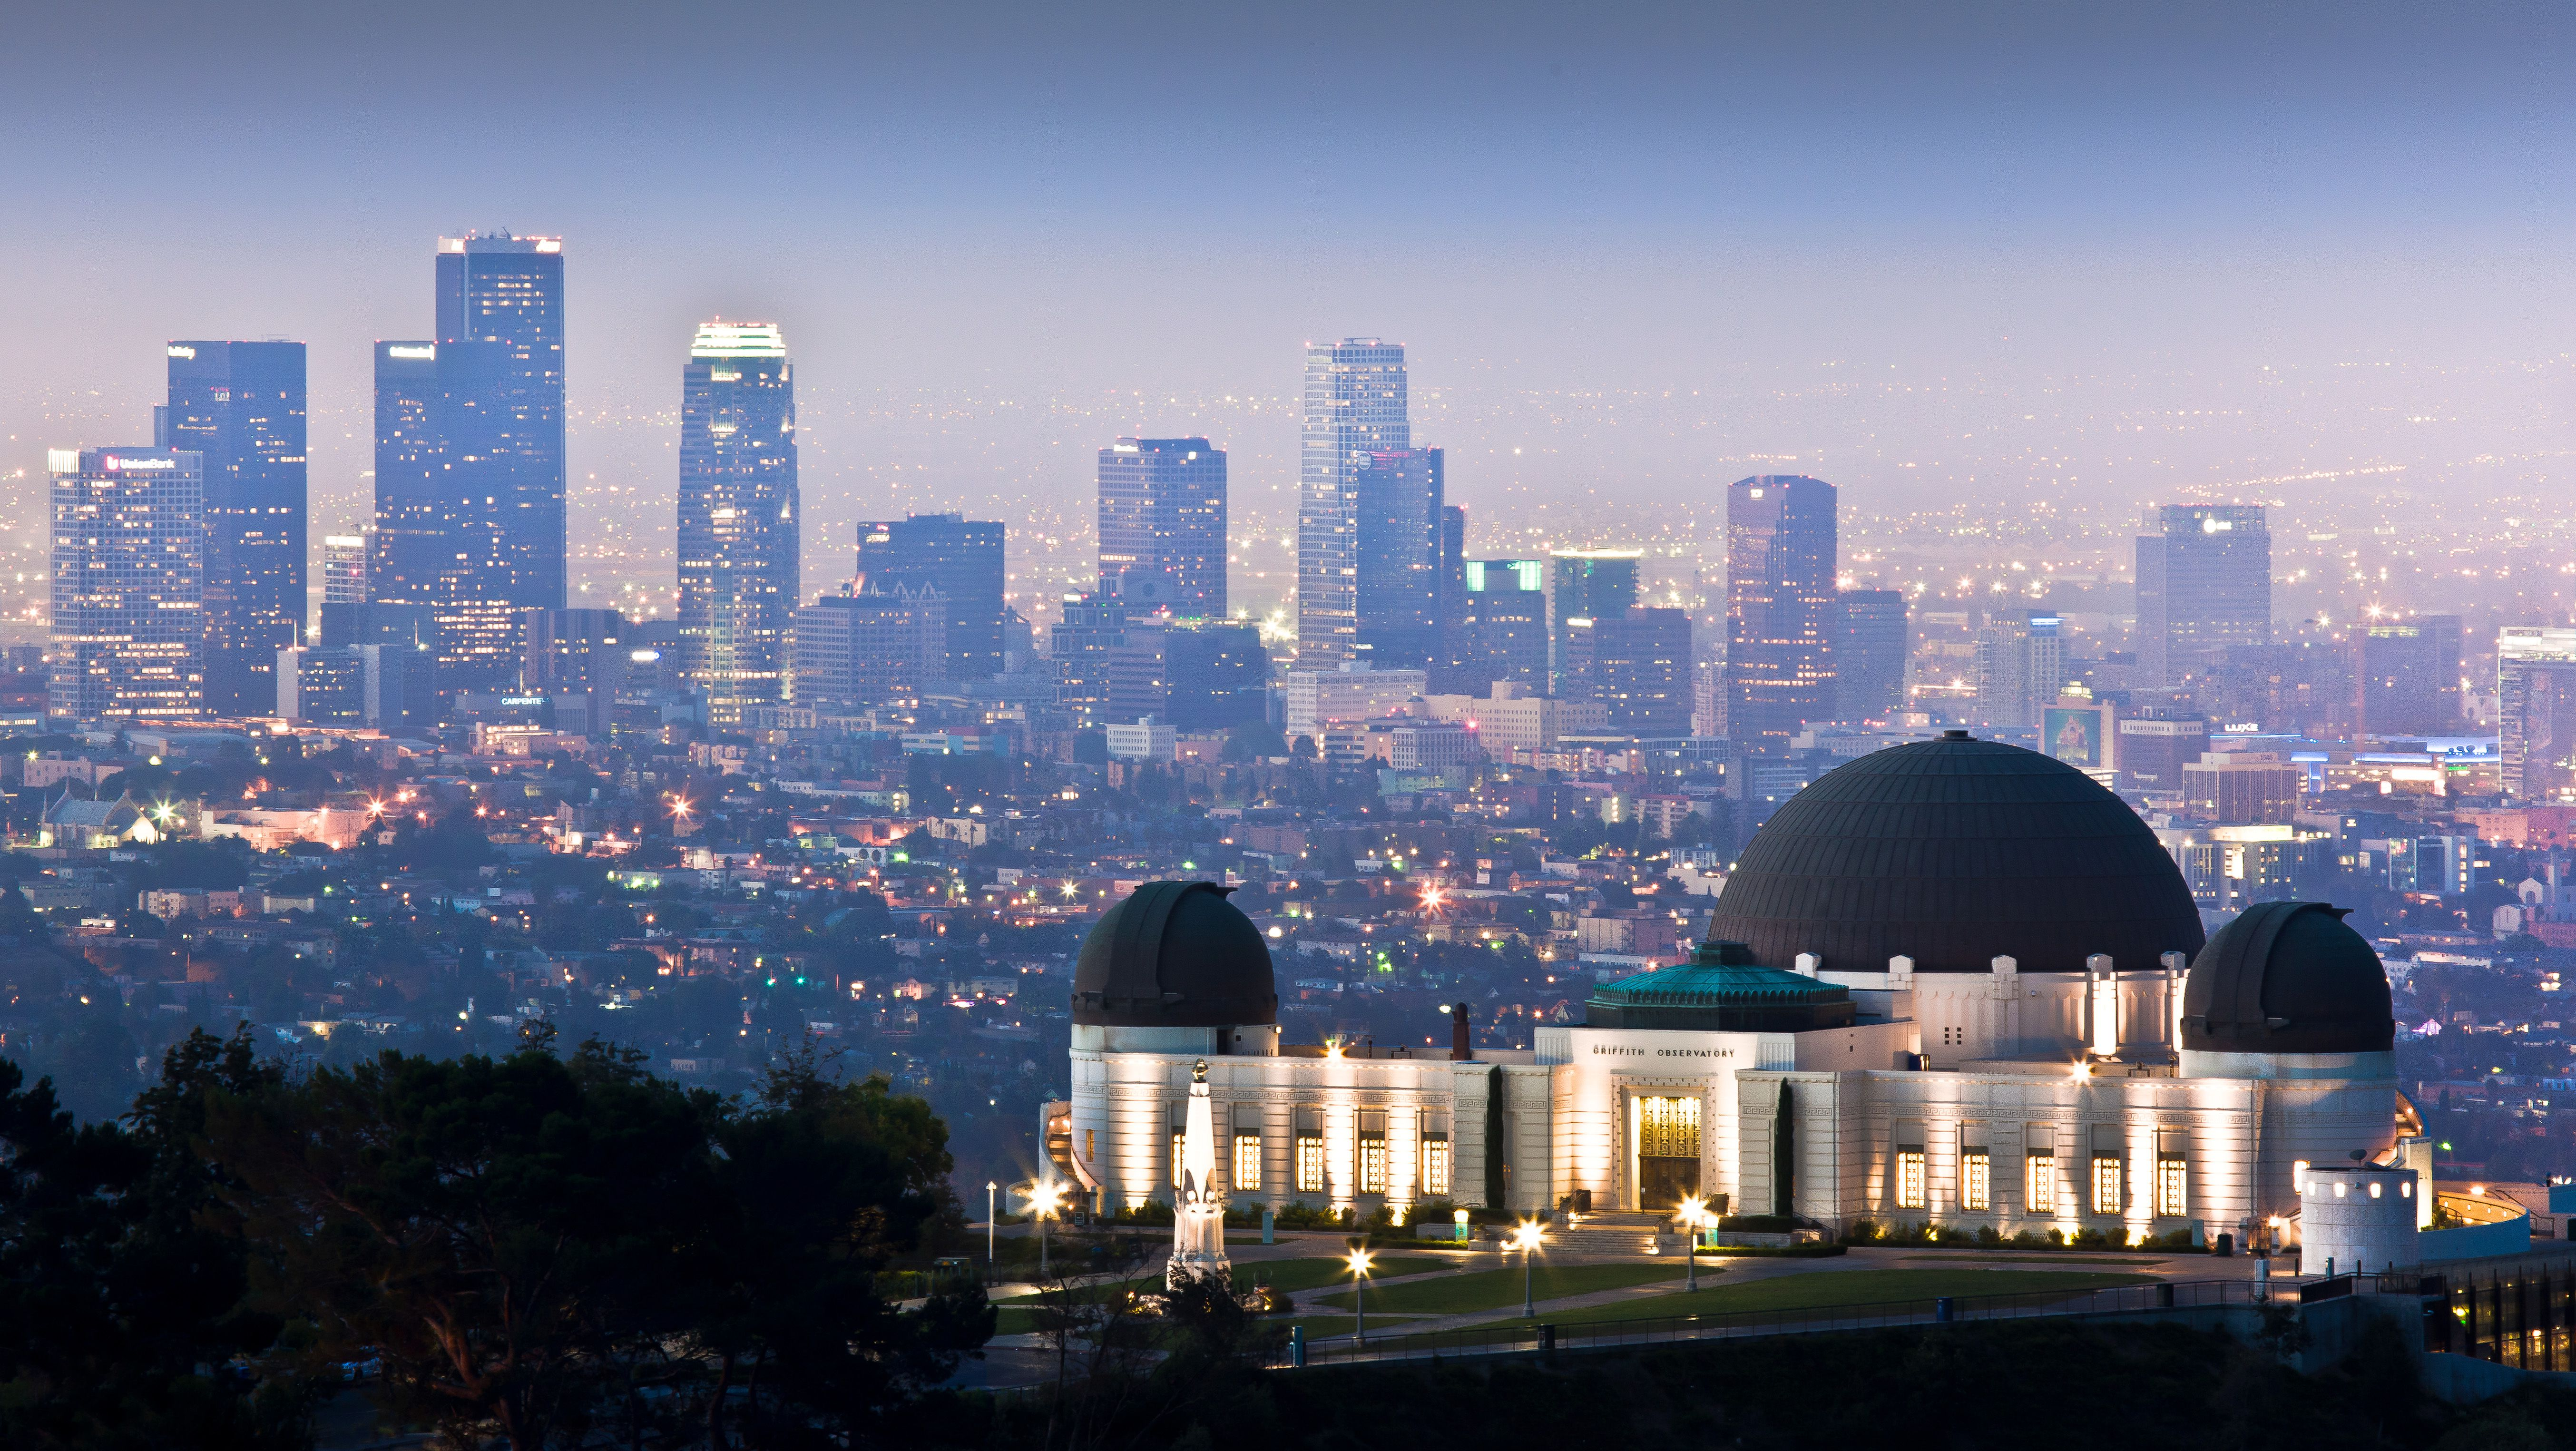 View of Downtown L.A. from the Griffith Observatory at night